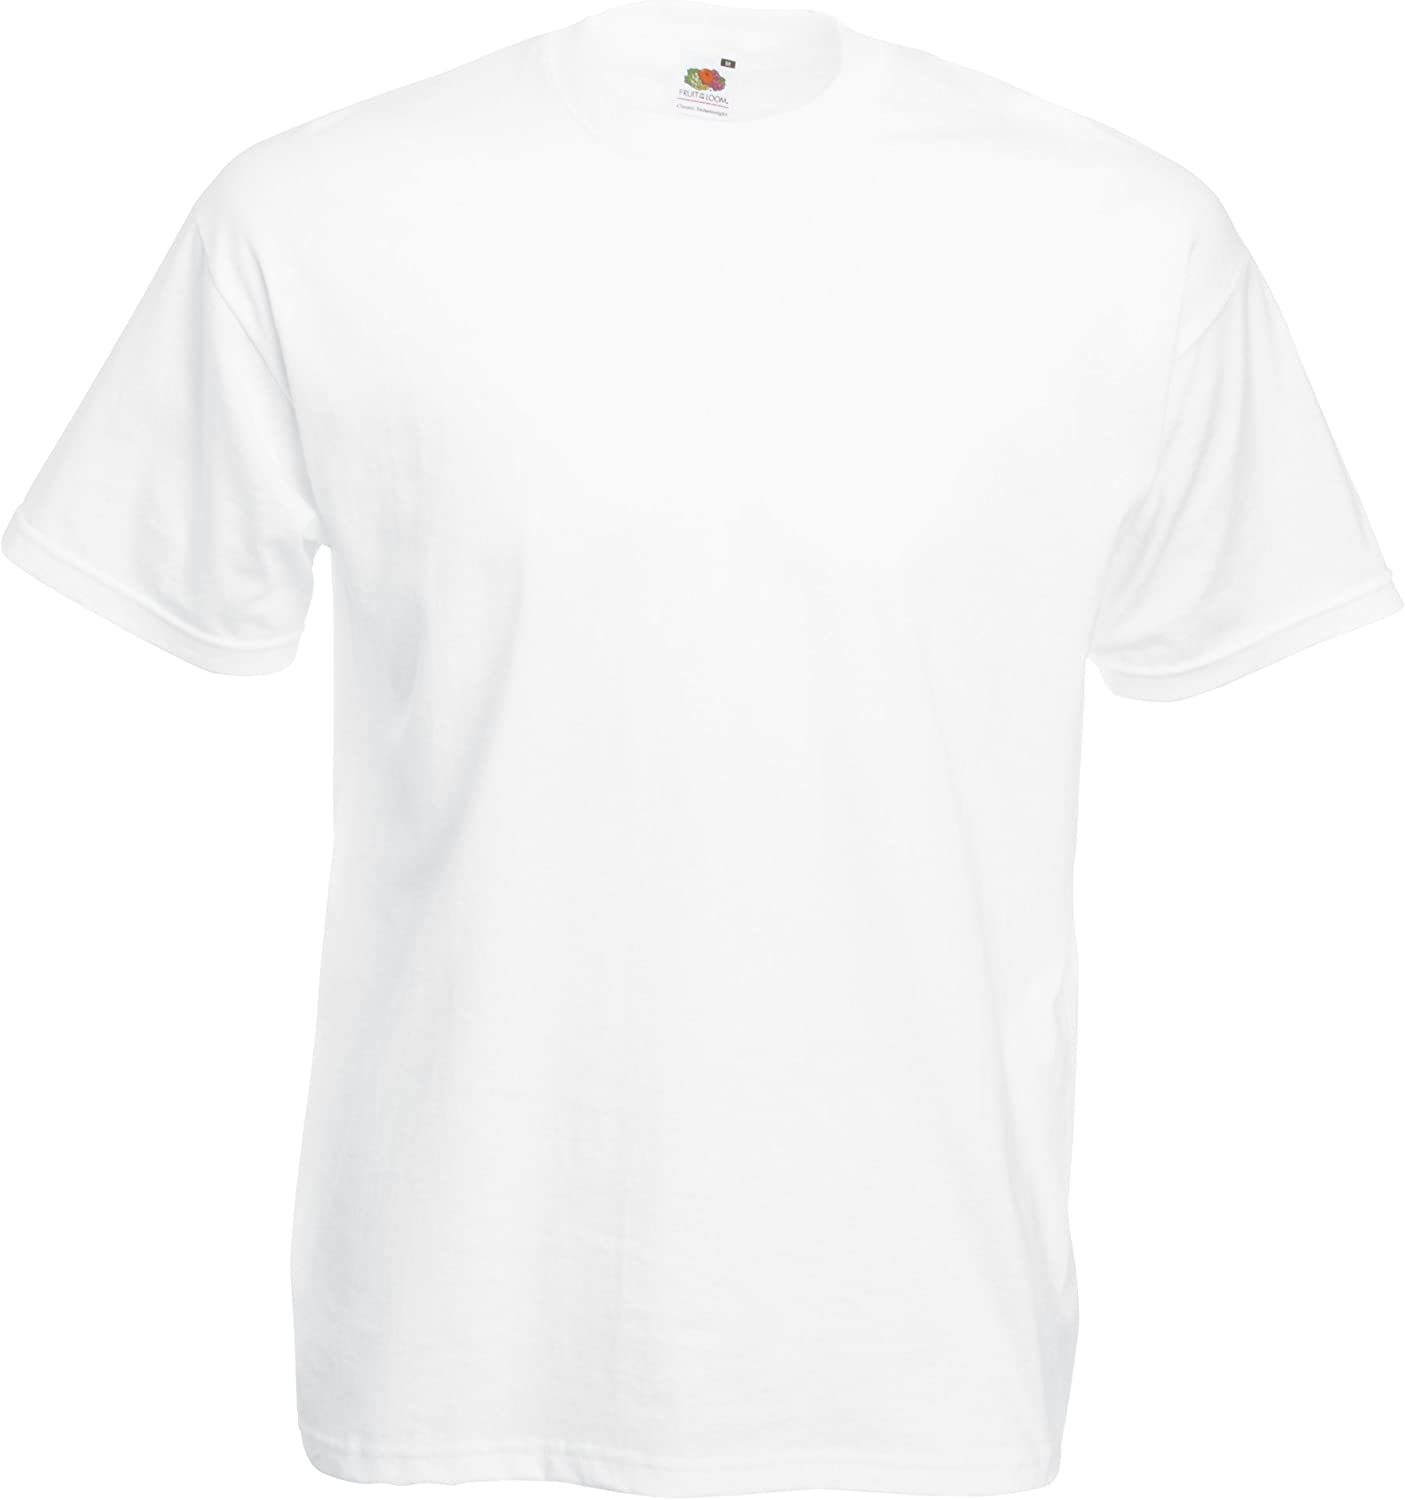 C Graphite 5er//10er Pack S-2XL F140 Fruit of the Loom T Shirt Valueweight T L